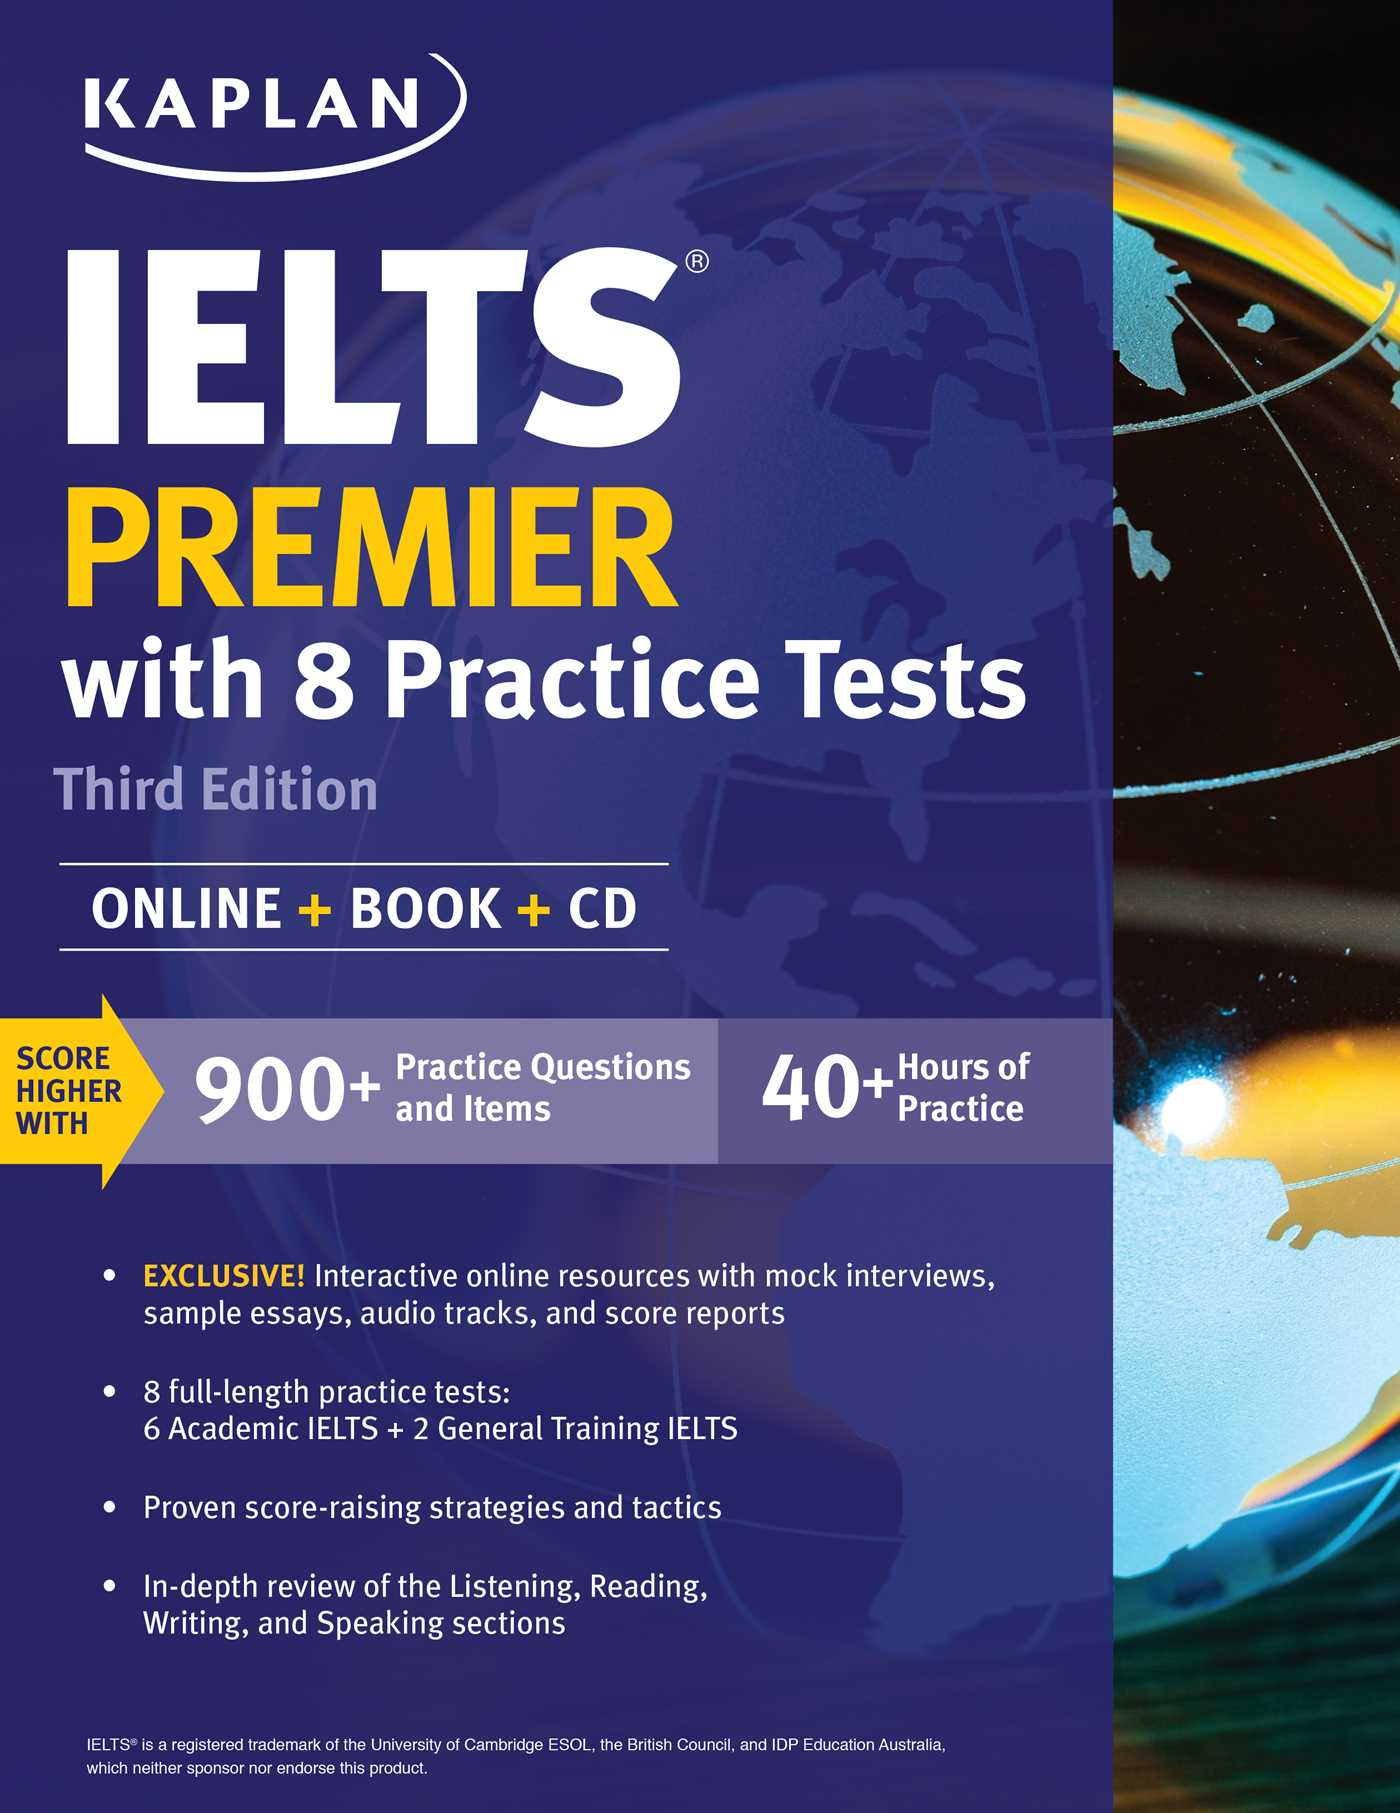 Ielts premier with 8 practice tests book by kaplan kaplan test ielts premier with 8 practice tests 9781506208671 hr fandeluxe Gallery